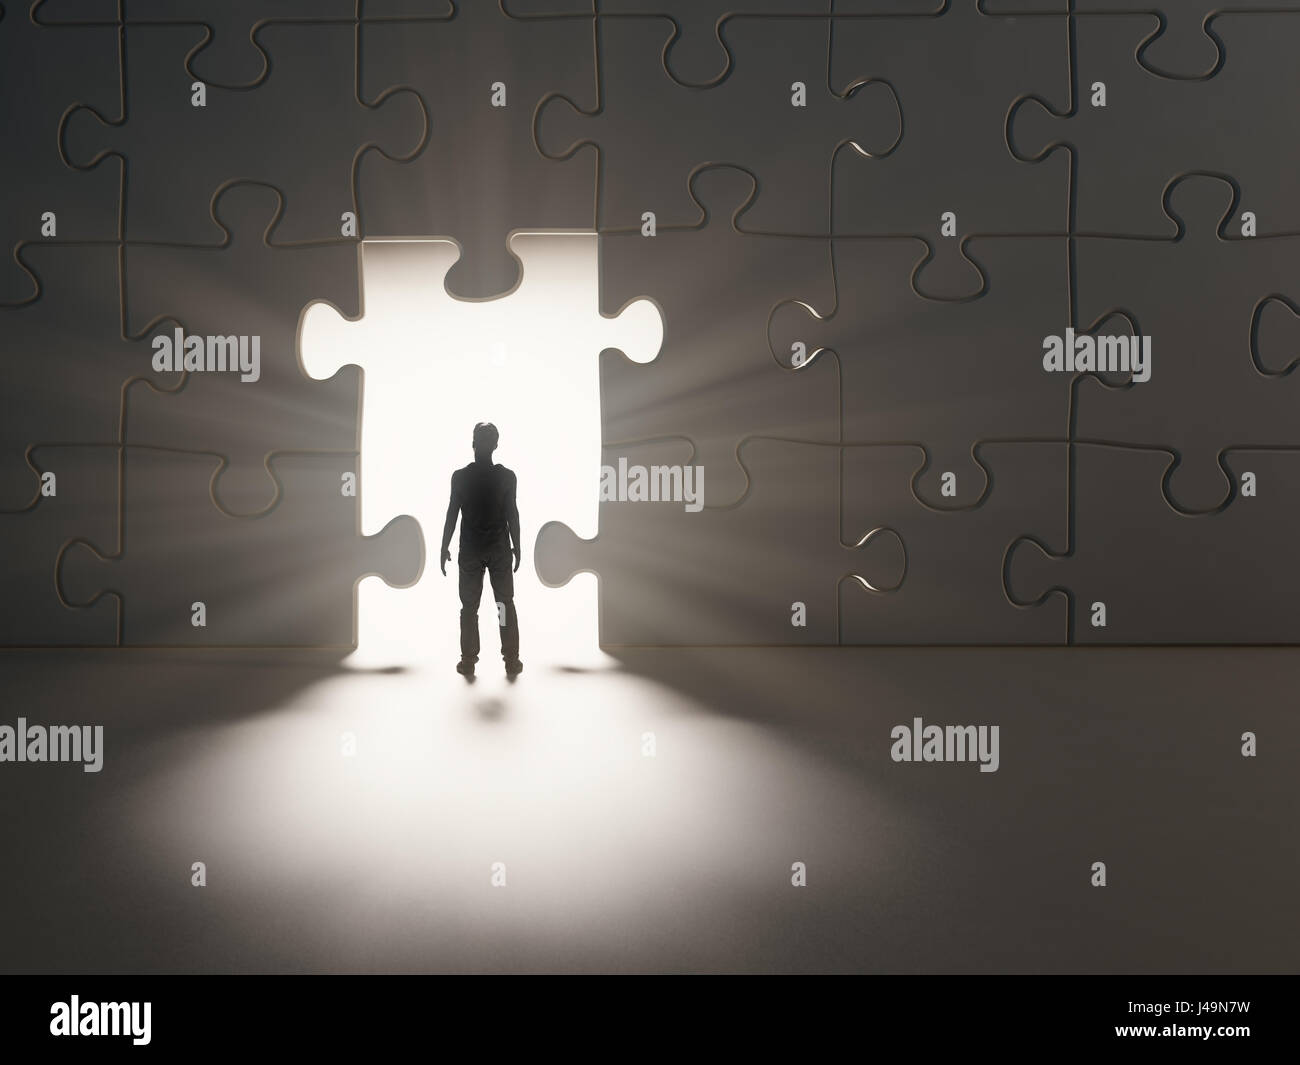 Man walking thourgh a break in a jig-saw puzzle wall - 3D illustration - Stock Image